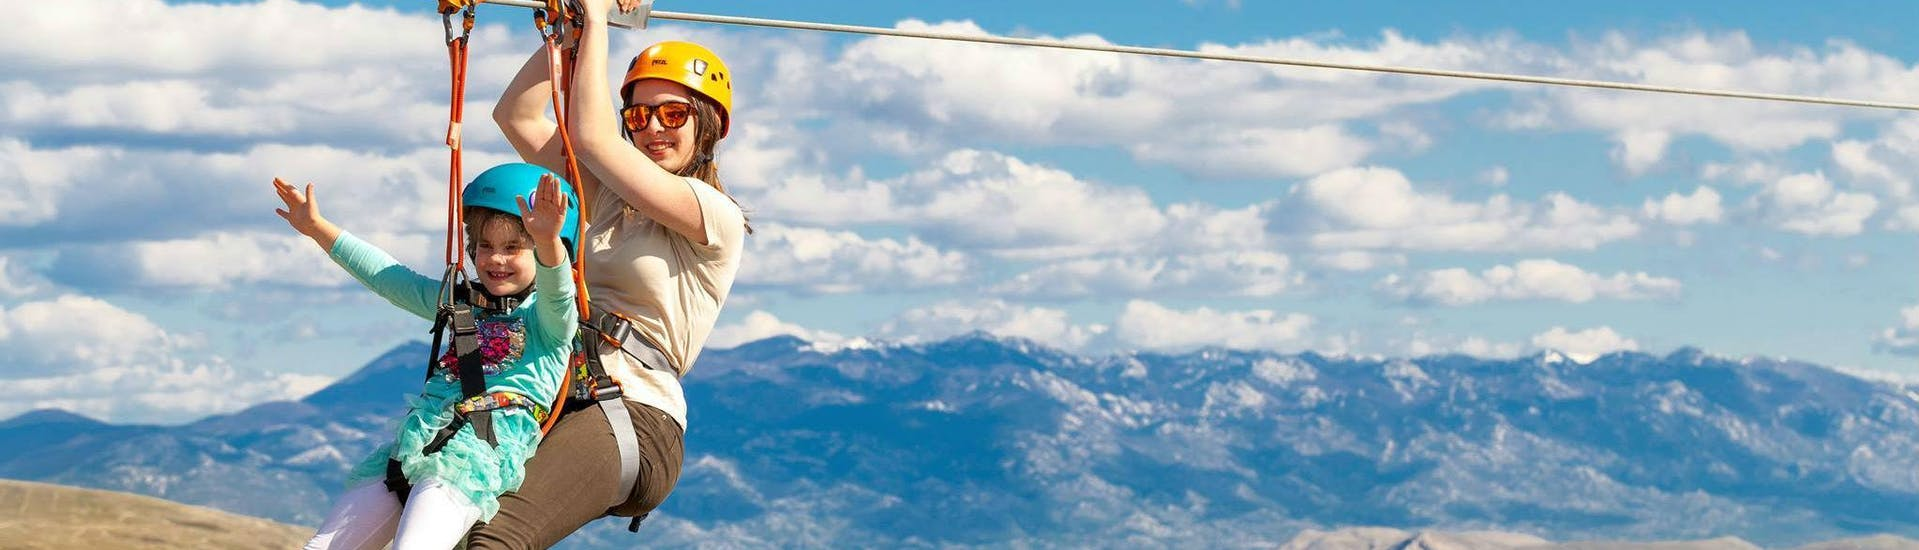 "A small happy girl is gliding on a zipline with a qualified guide from Edison Zipline Krk during the zipline tour ""Explore Krk"" on the Island of Krk."